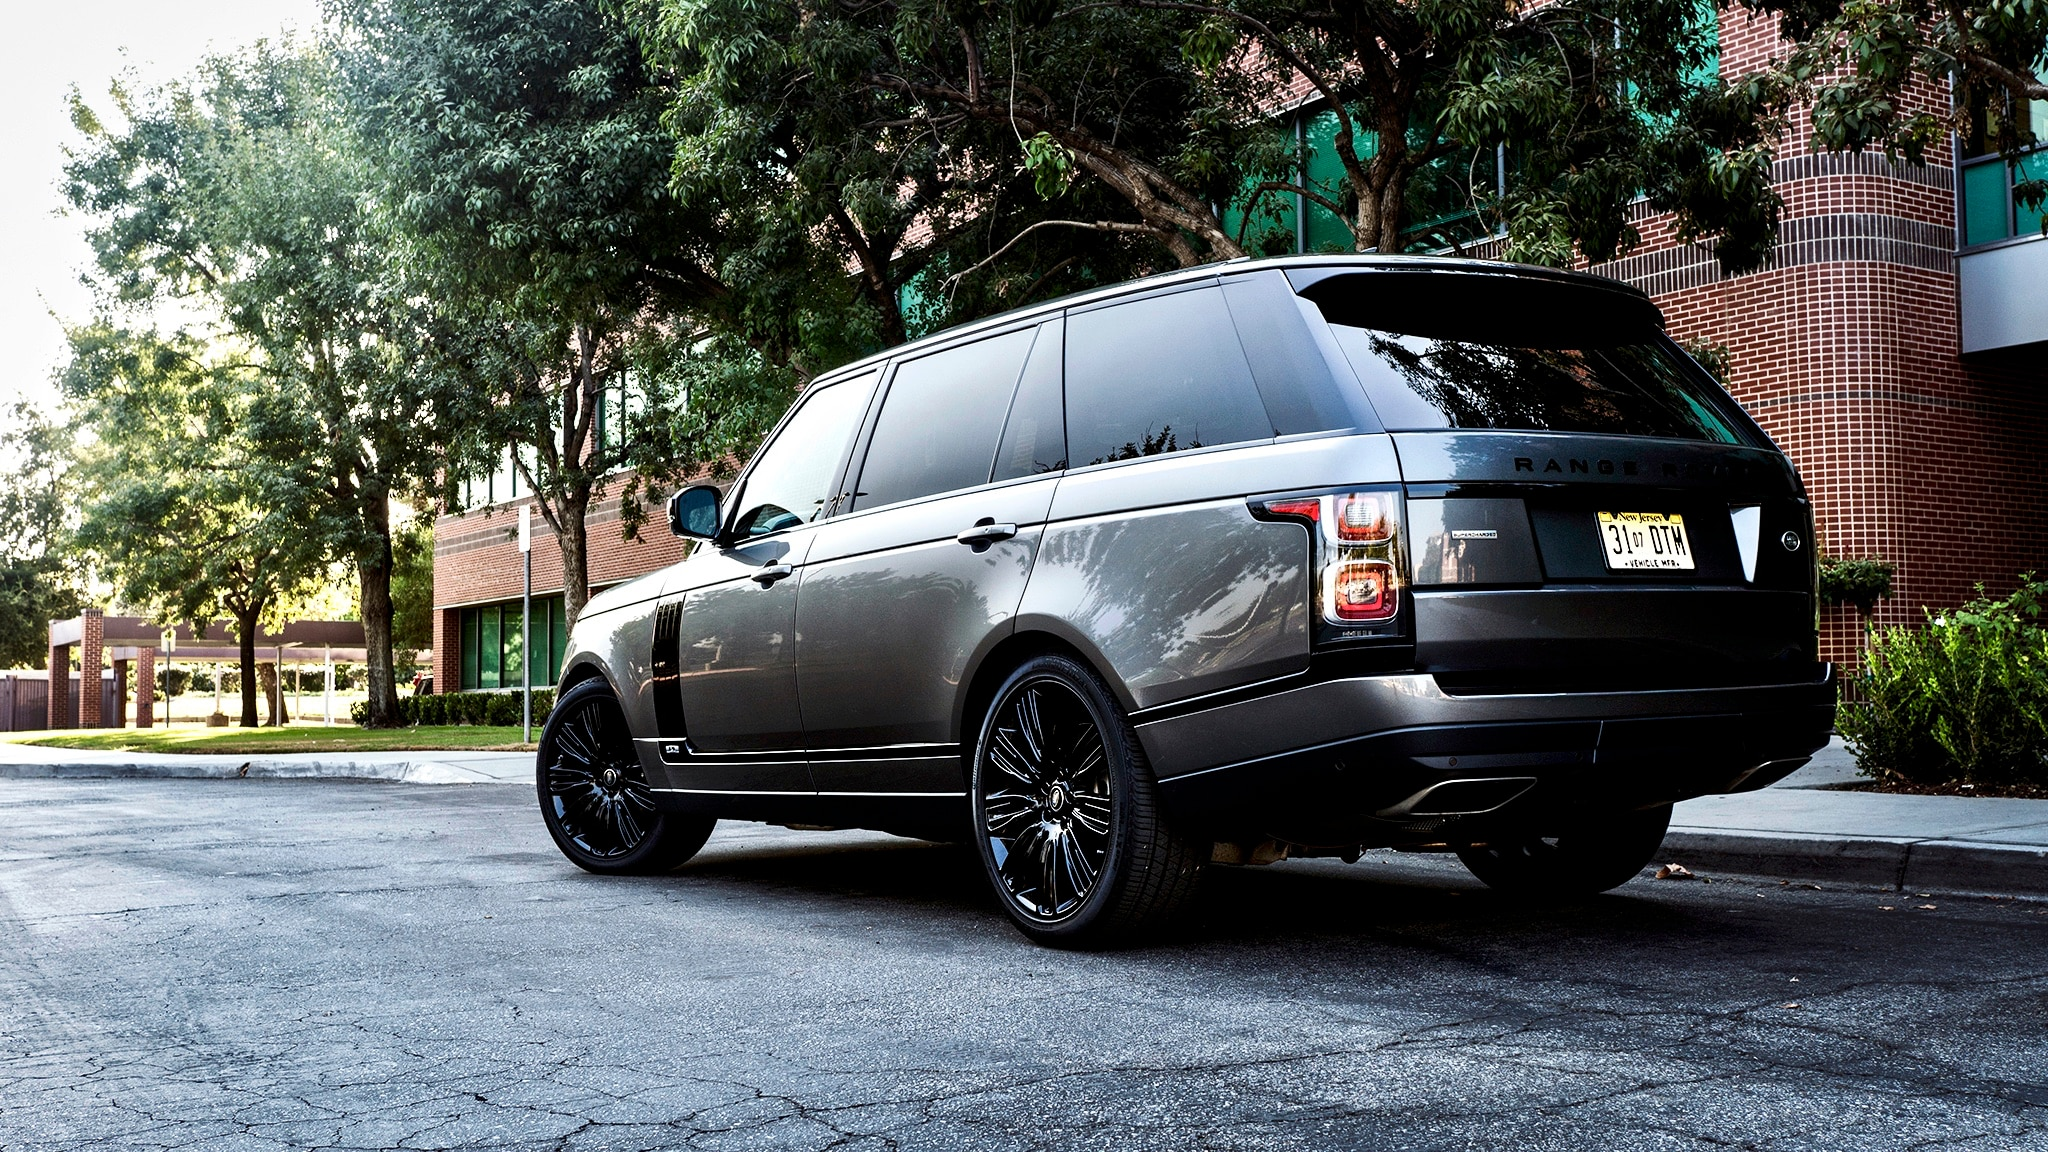 Eight Fabulous Things About the 2018 Range Rover LWB | Automobile